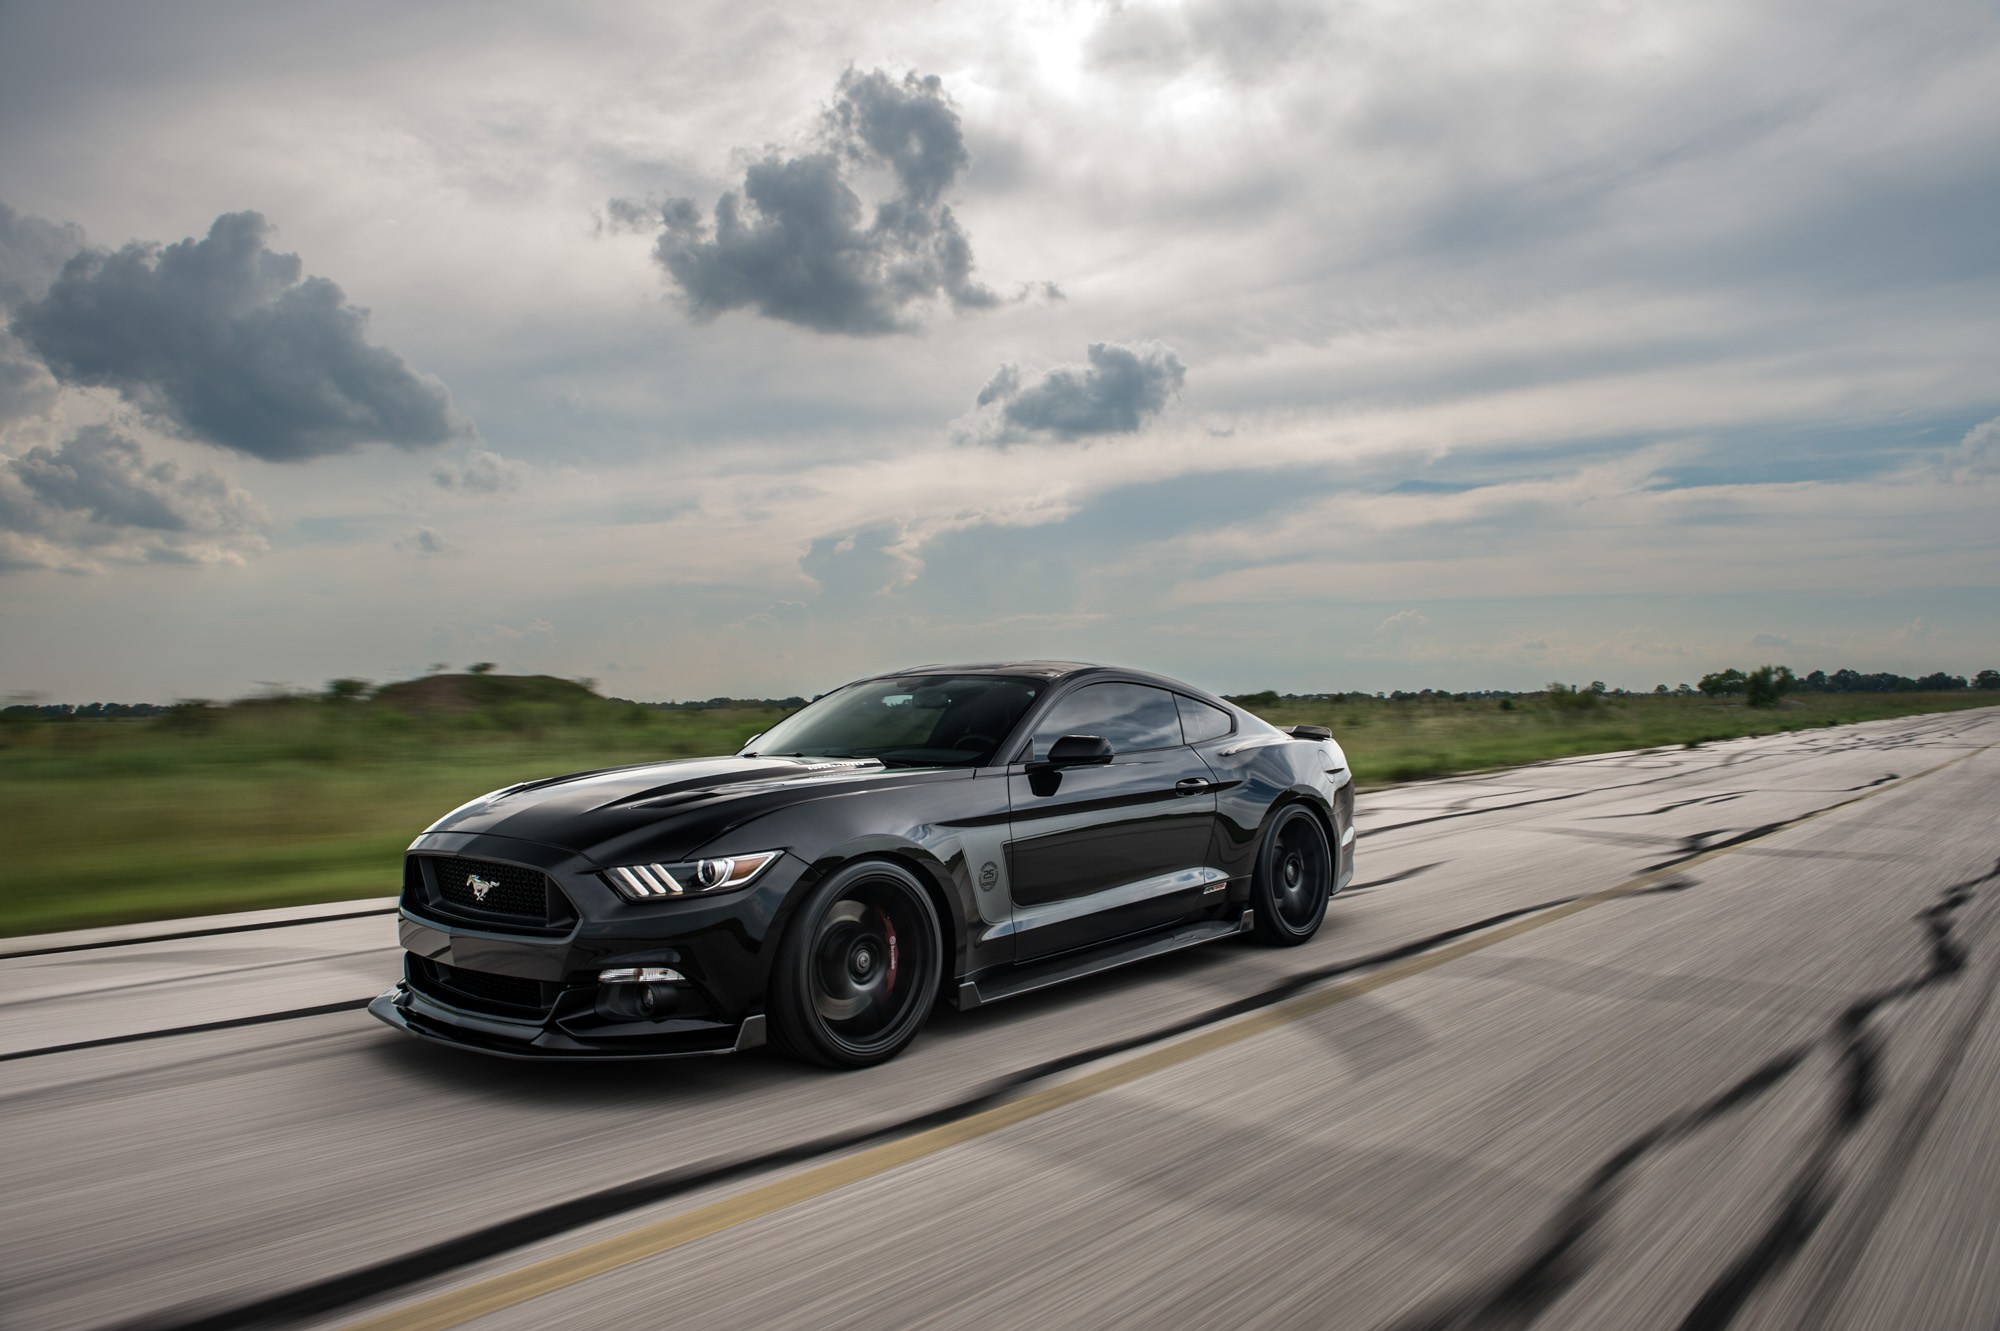 Hennessey 25th Anniversary Edition Hpe800 Ford Mustang For